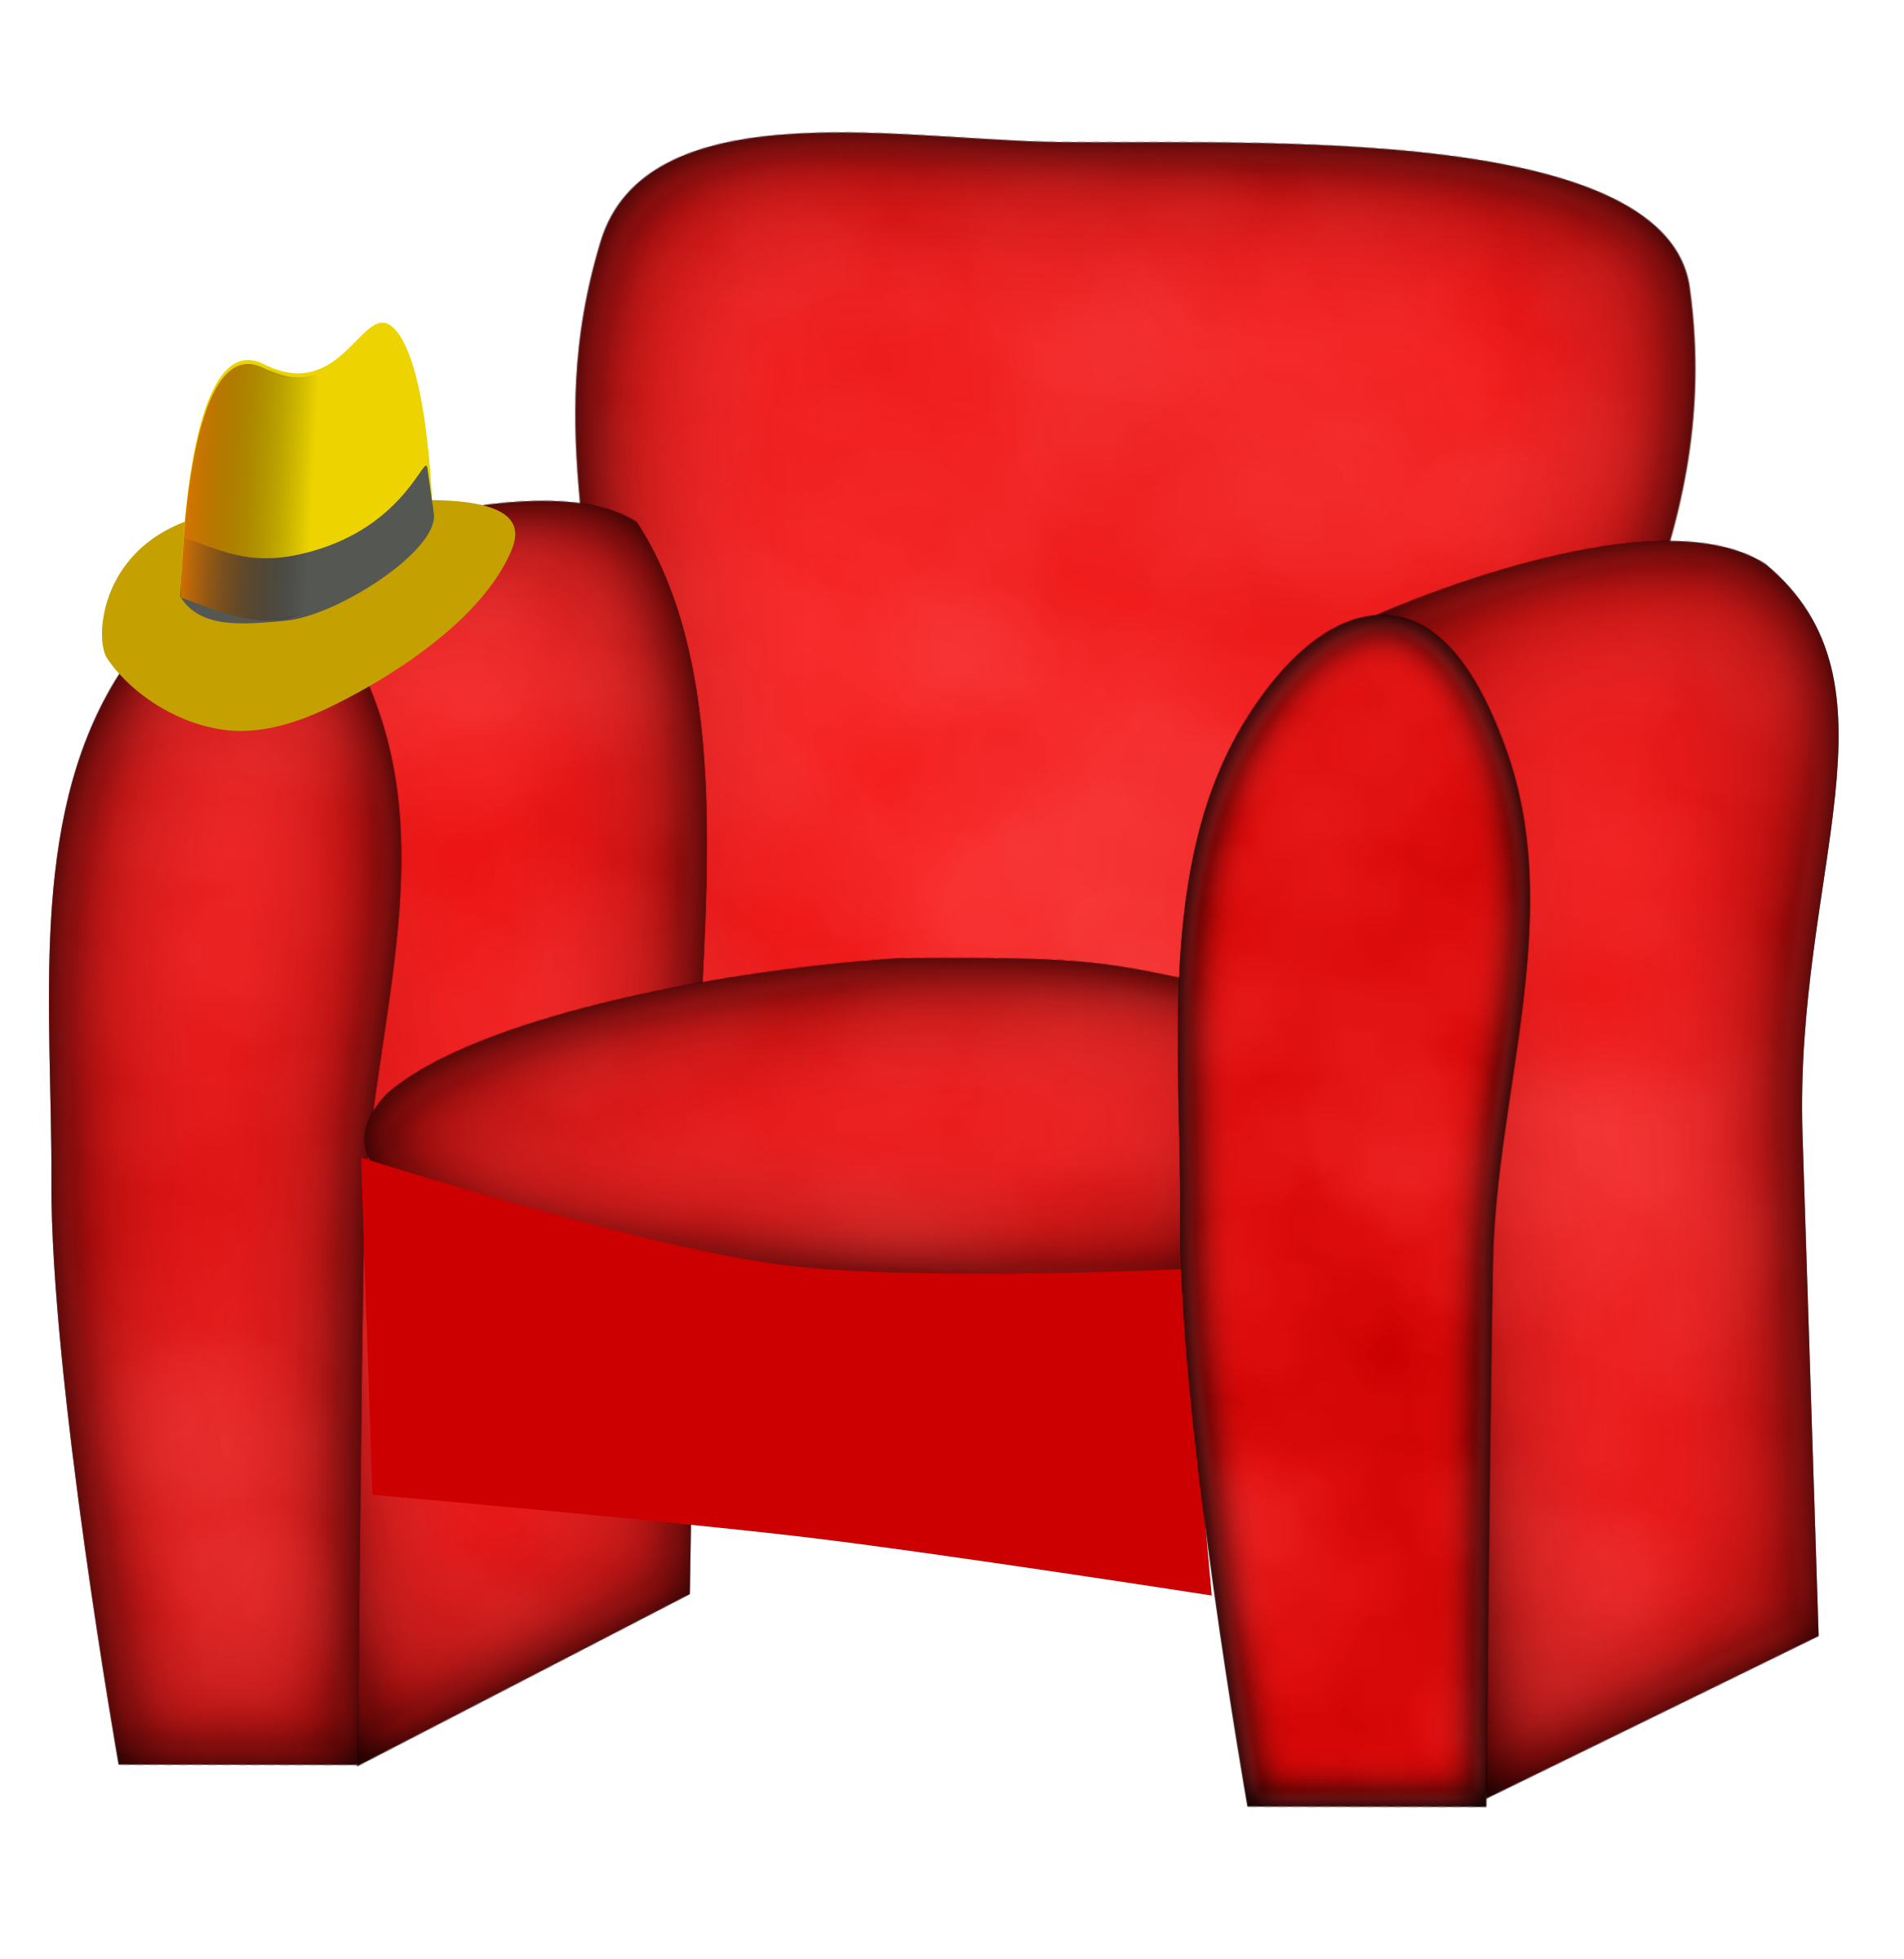 Hat on a big. Furniture clipart comfortable chair